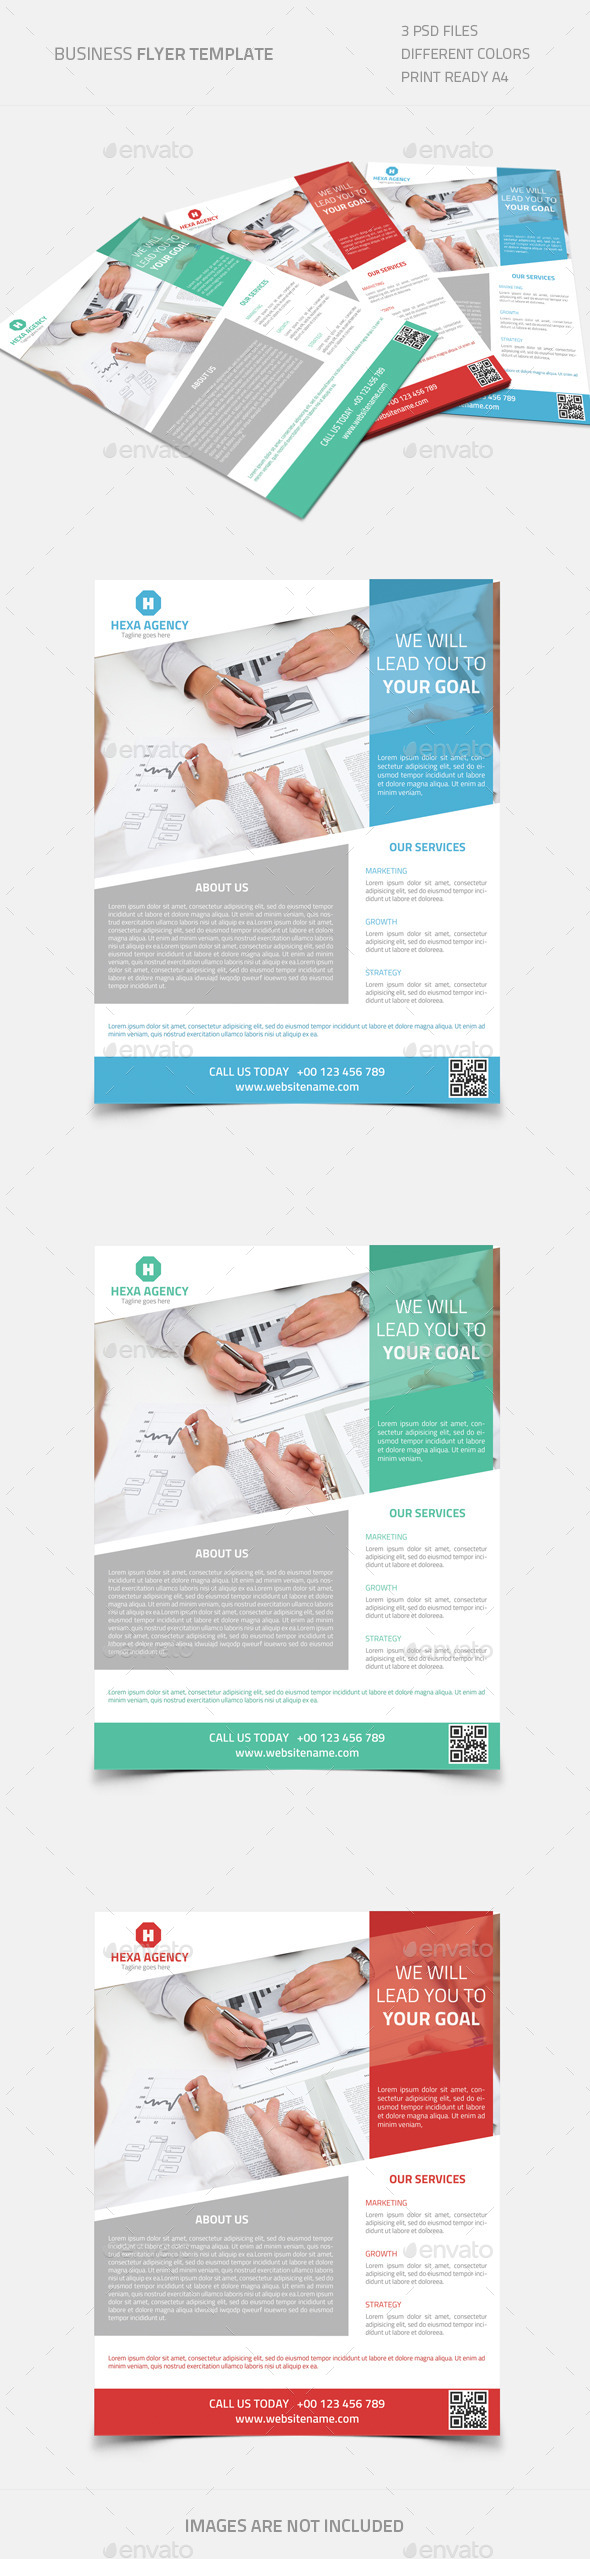 GraphicRiver Business Flyer 01 8906383